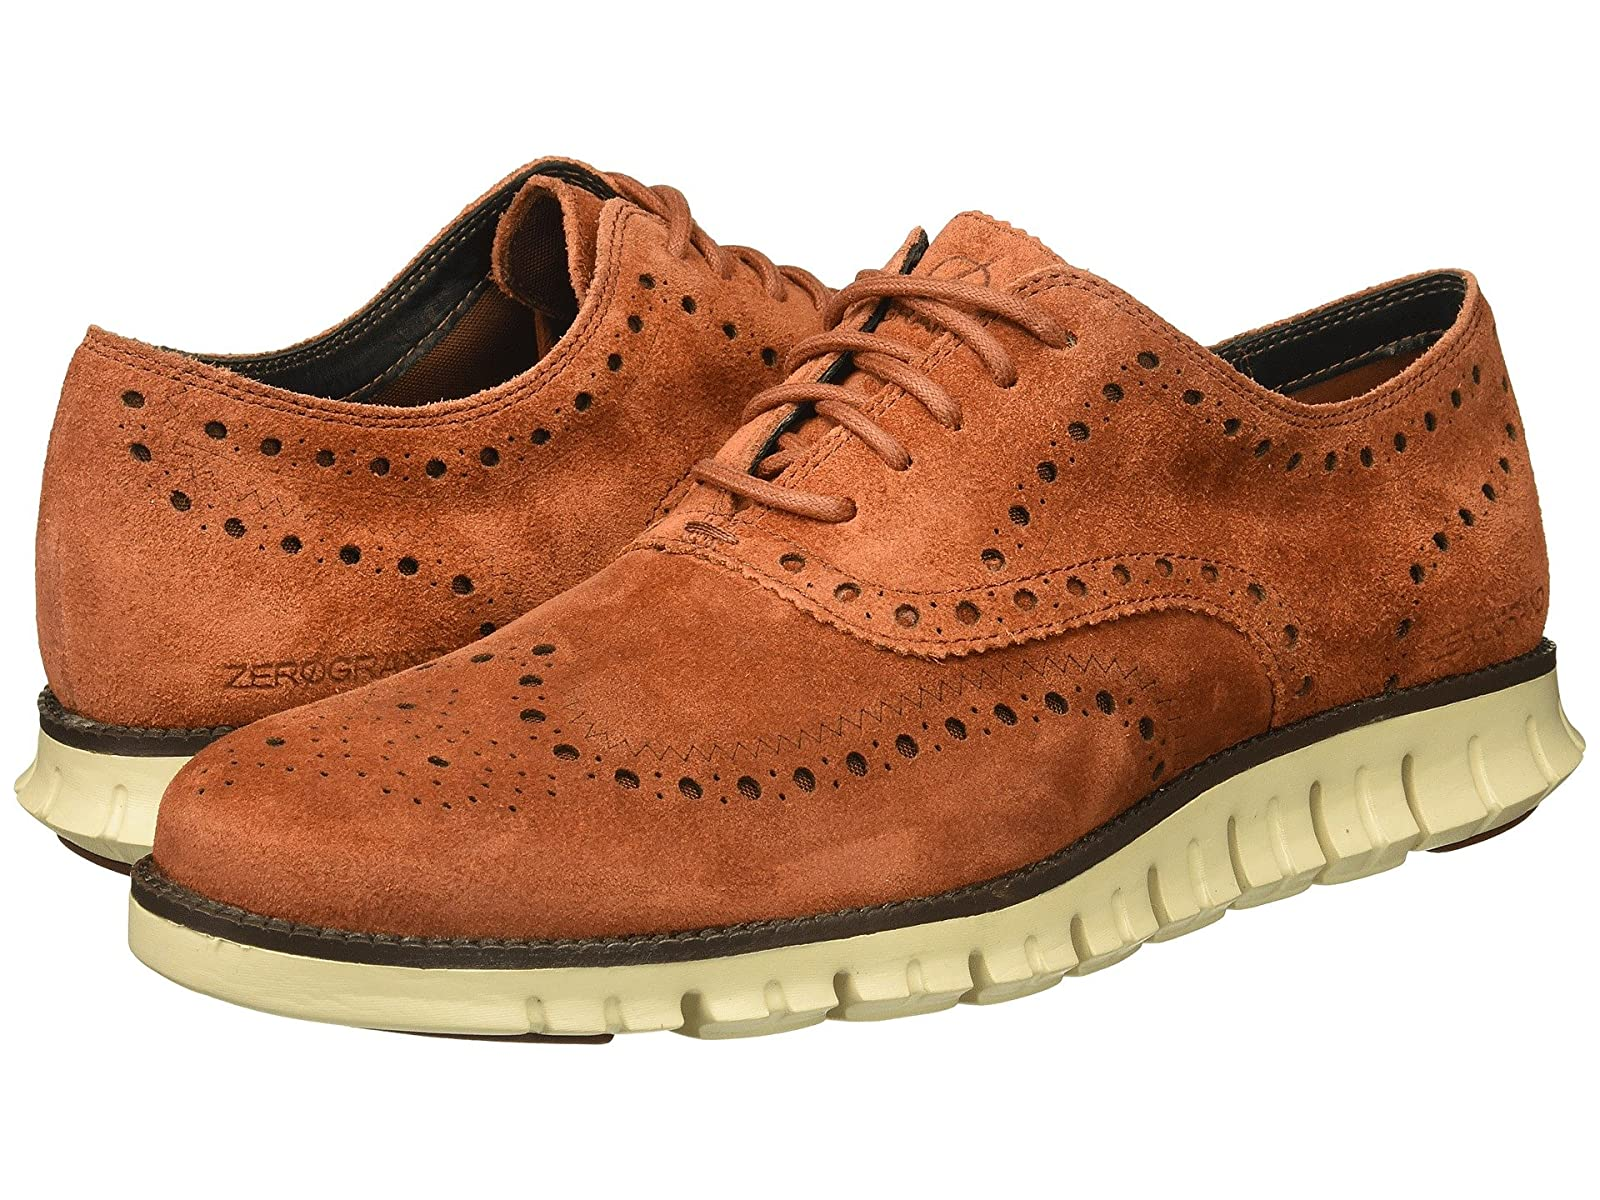 Cole Haan Zerogrand Wing Ox SuedeCheap and distinctive eye-catching shoes